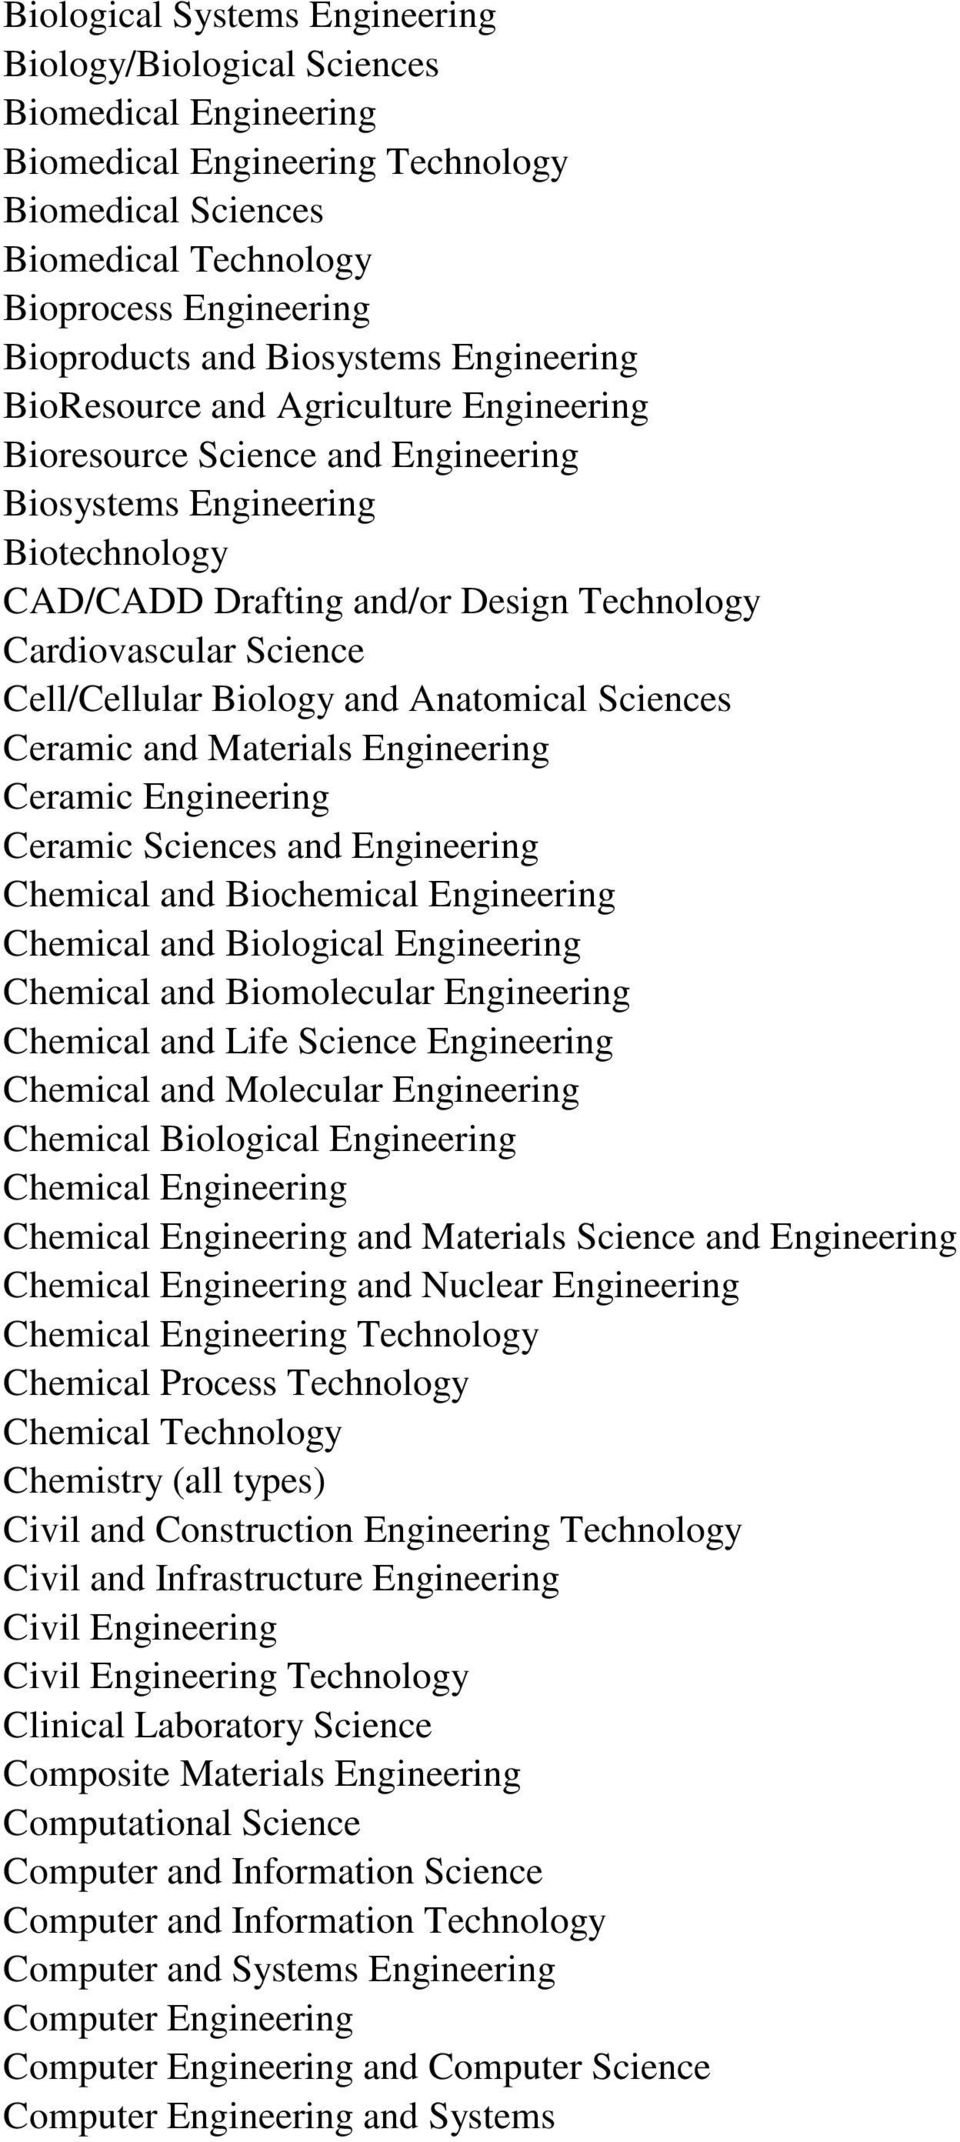 Science Cell/Cellular Biology and Anatomical Sciences Ceramic and Materials Engineering Ceramic Engineering Ceramic Sciences and Engineering Chemical and Biochemical Engineering Chemical and